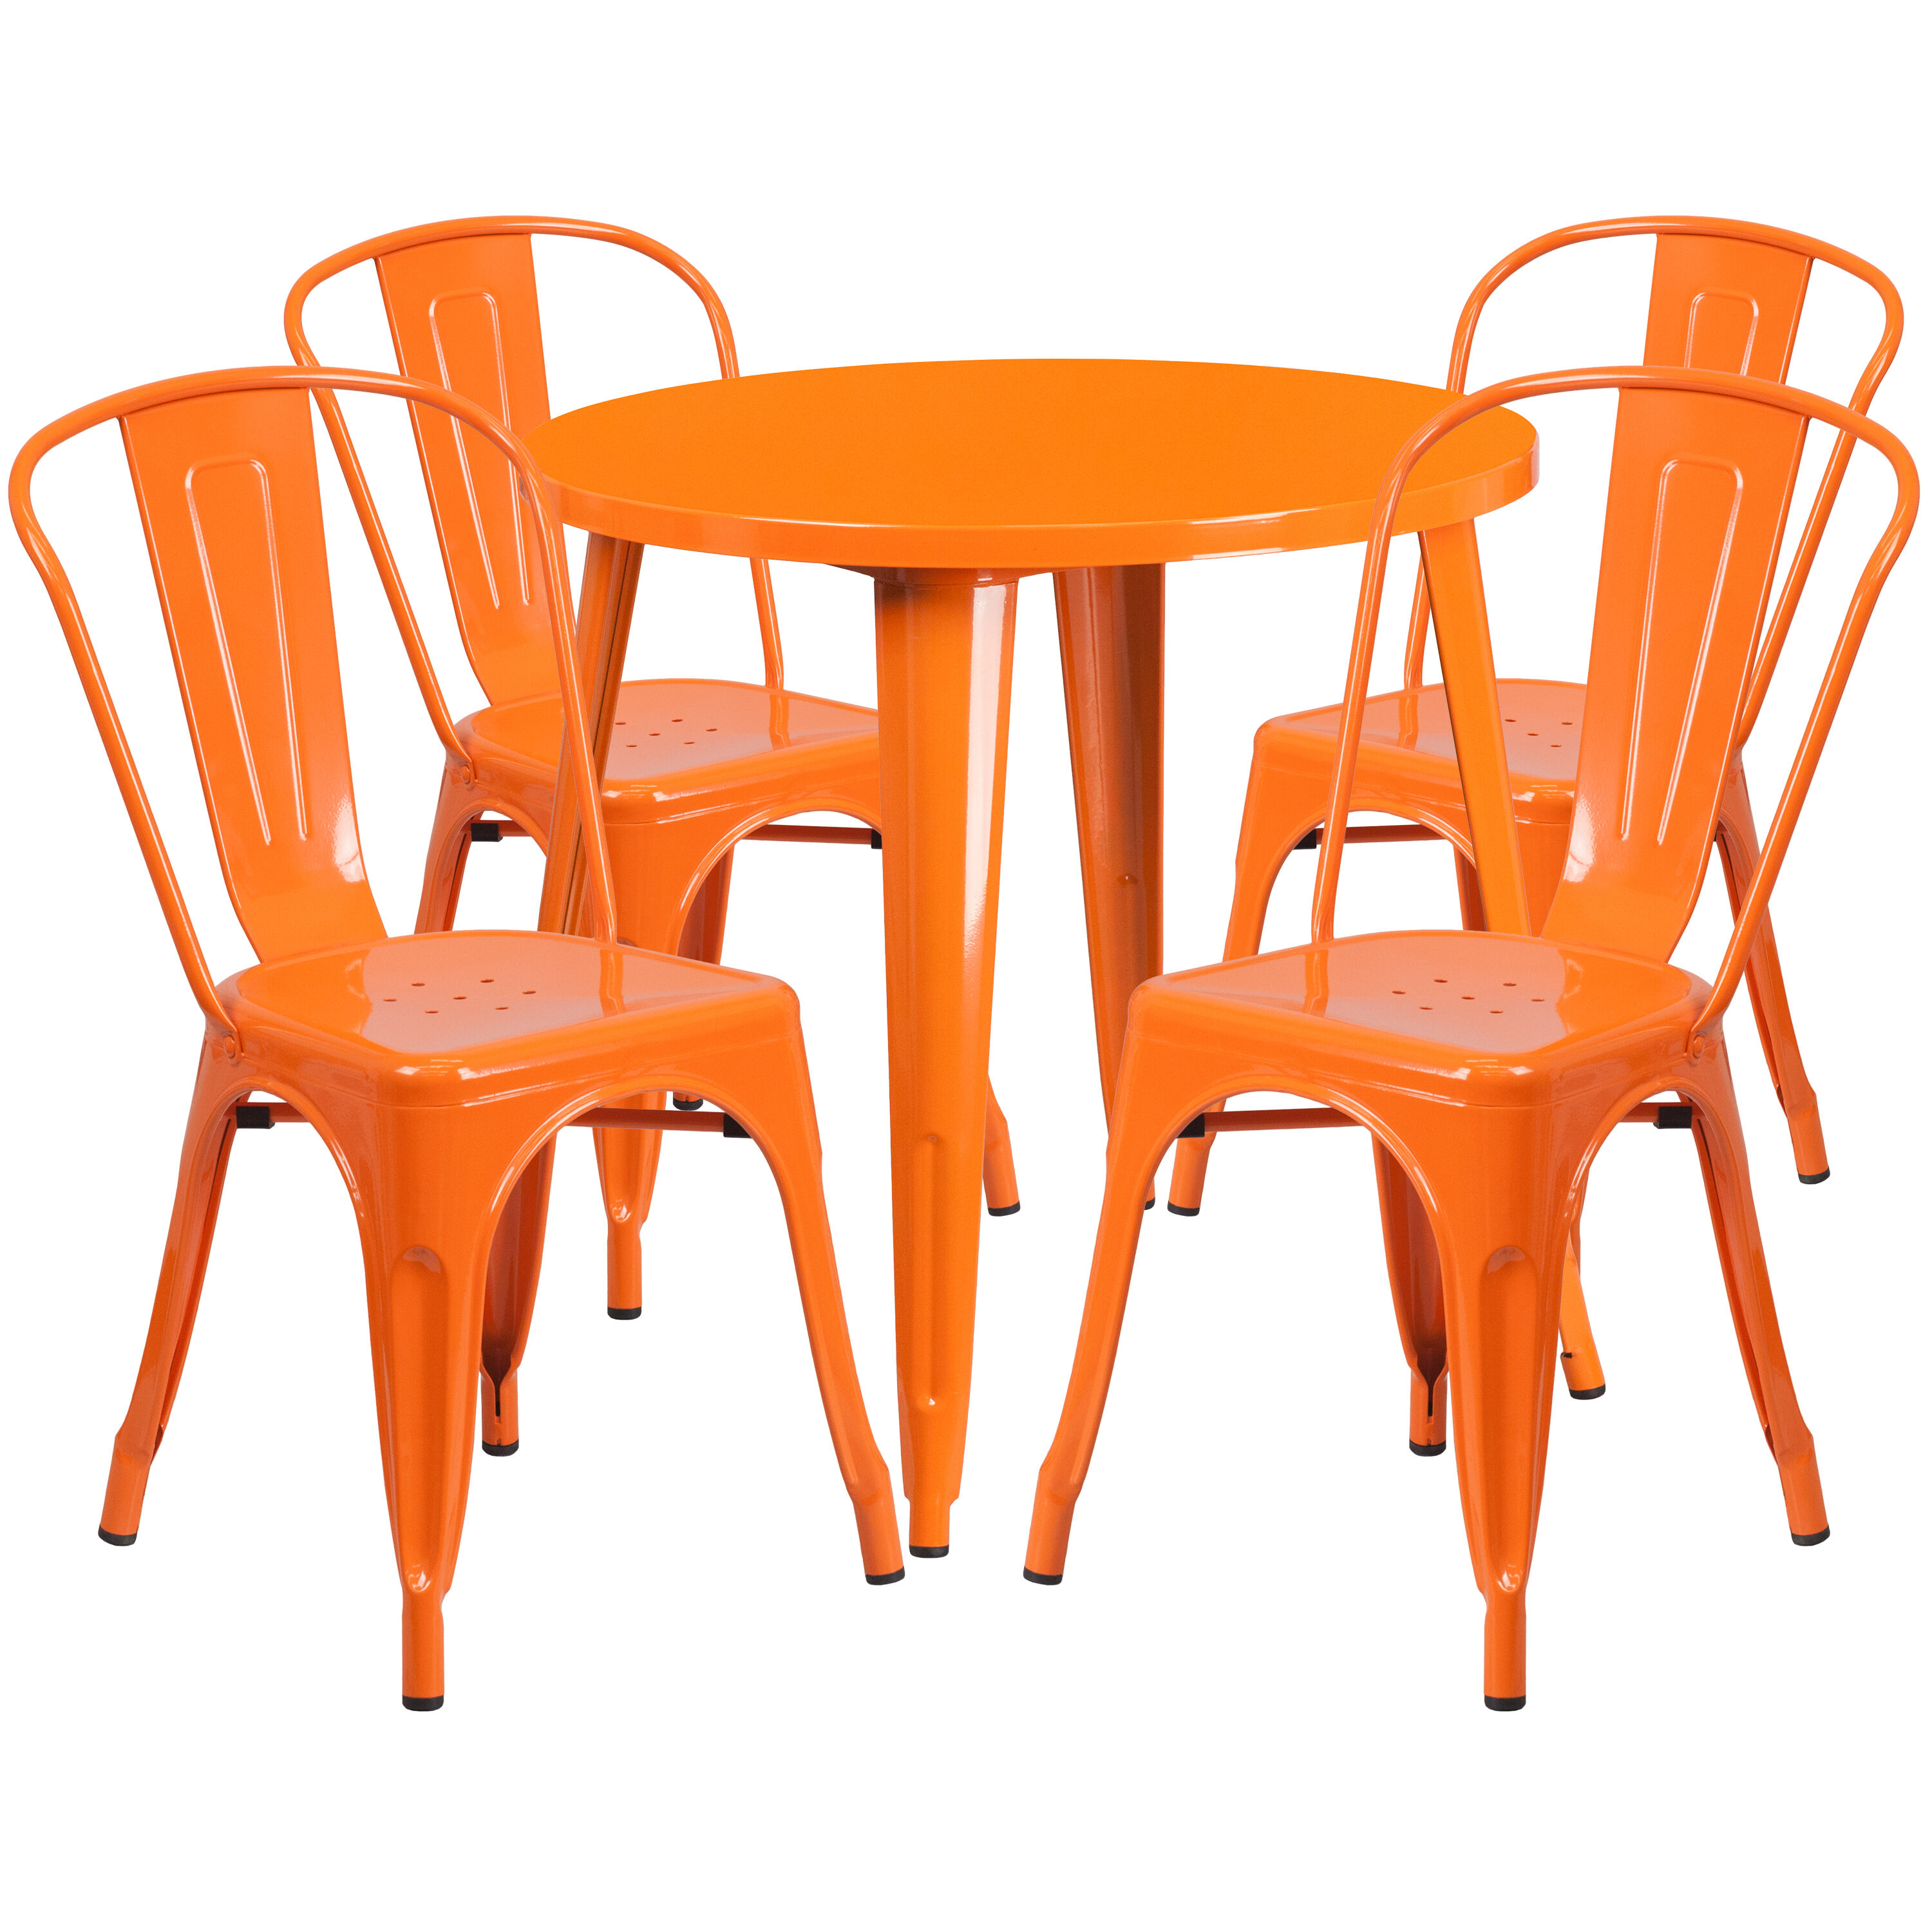 orange cafe chairs walker chair combo 30rd metal set ch 51090th 4 18cafe or gg bizchair